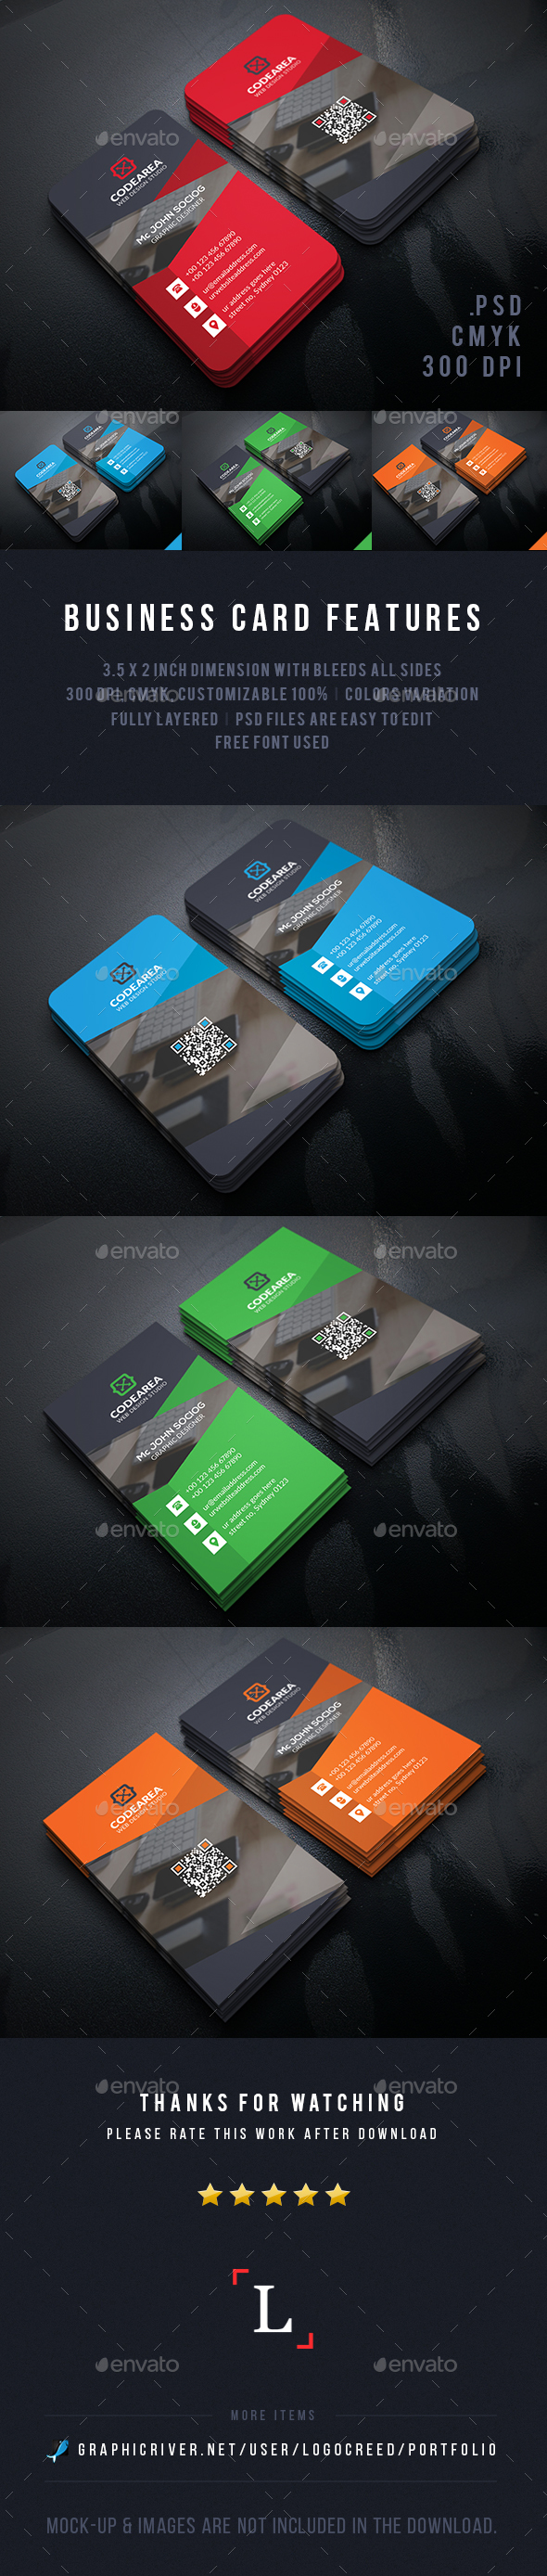 Shape Creative Business Cards - Business Cards Print Templates